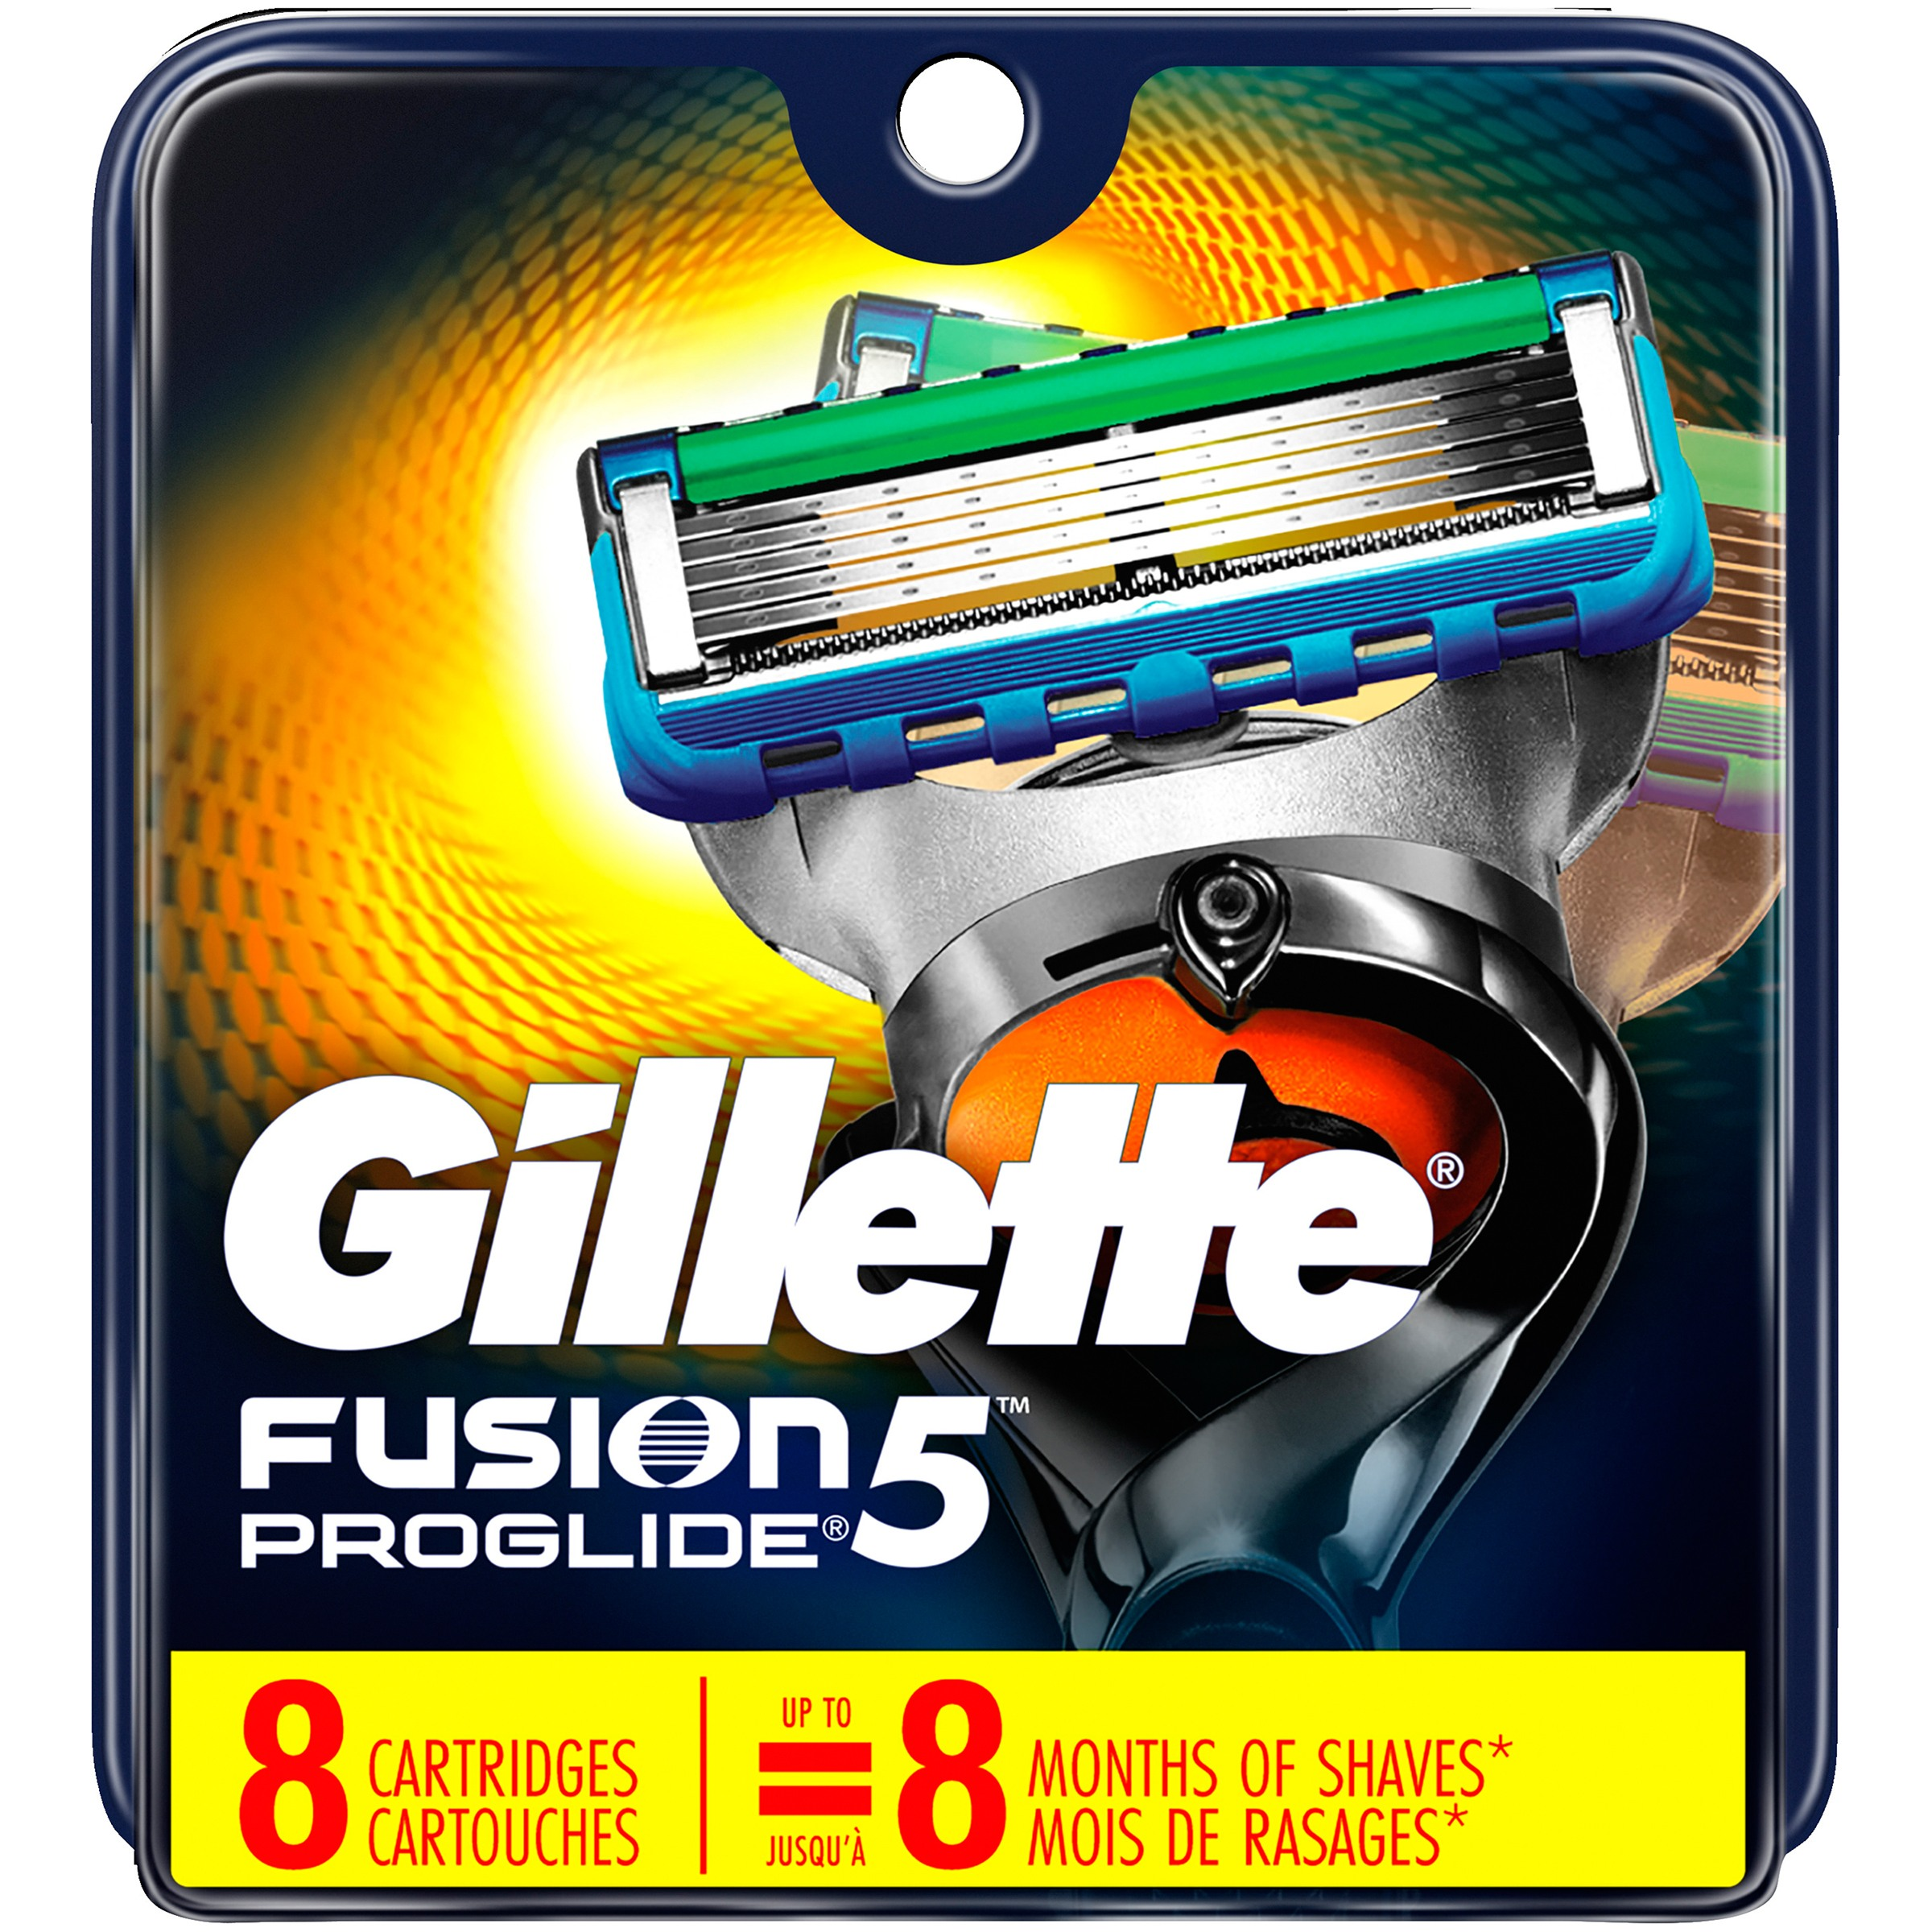 Gillette Fusion ProGlide Power Razor Cartridge Refills, 8 count + Beyond BodiHeat Patch, 1 Ct